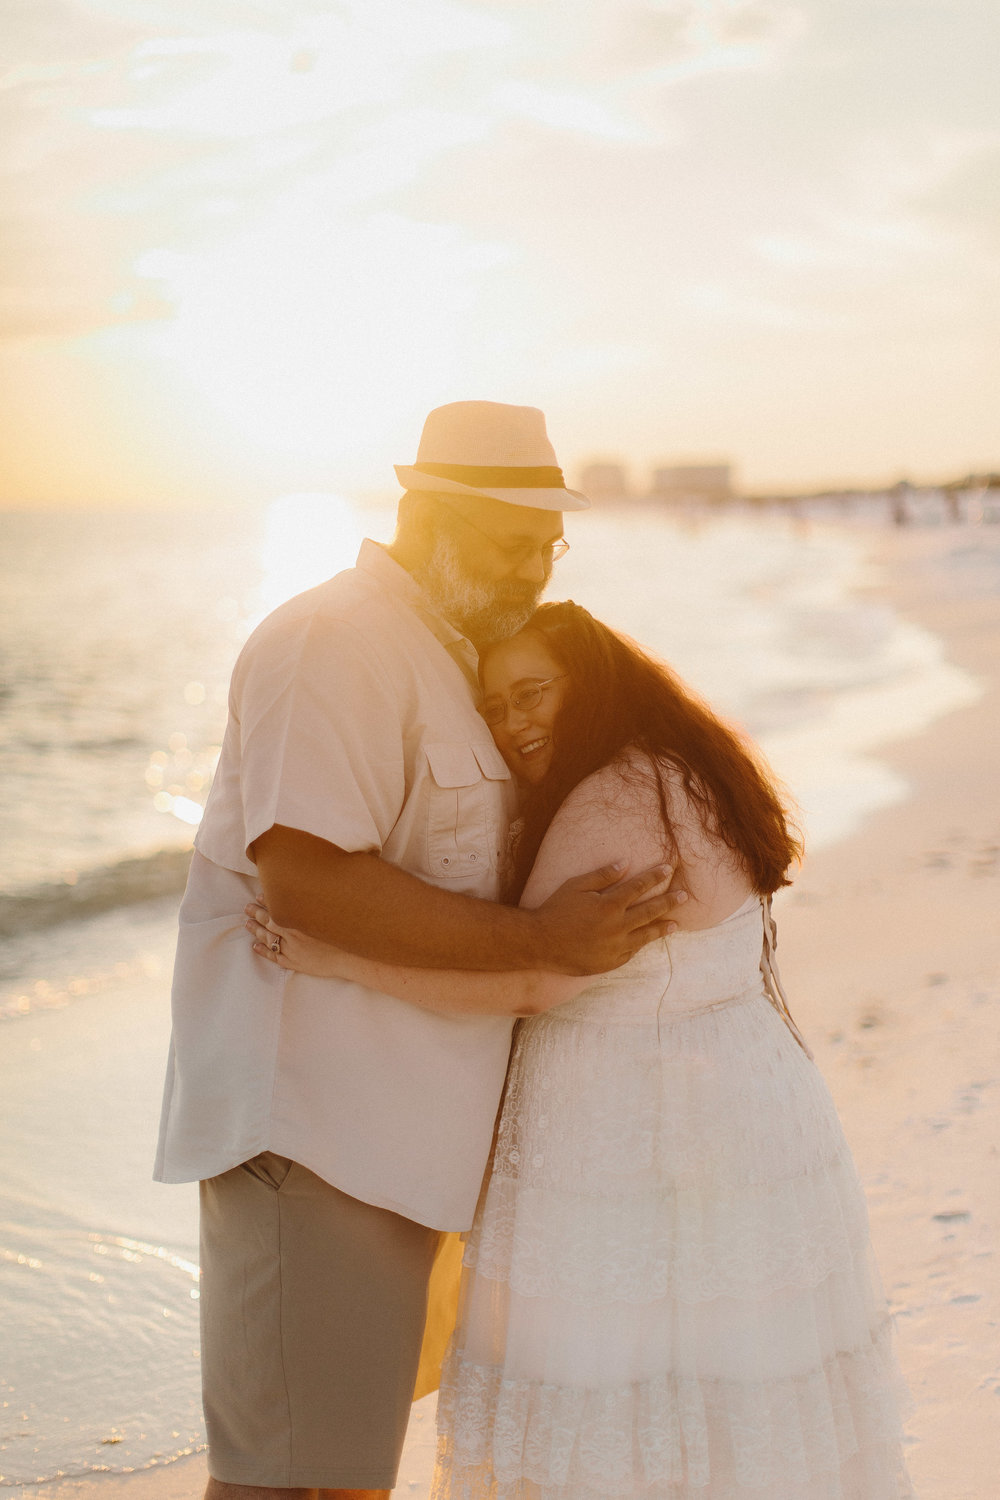 destin_sunset_beach_elopement_intimate_wedding_photographer_florida_documentary_1279.jpg